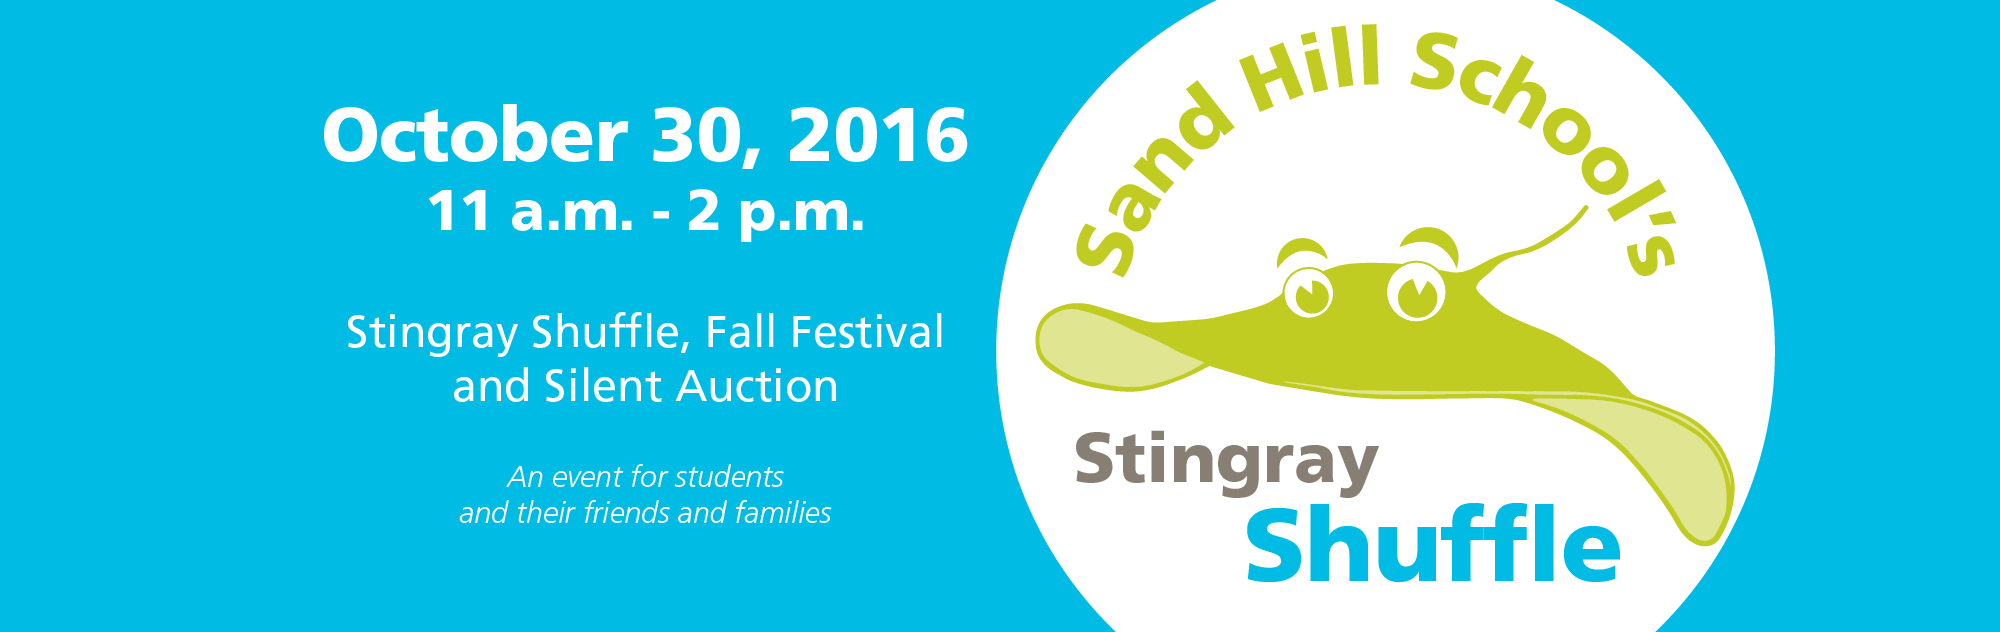 Sand Hill School Stingray Shuffle – October 30, 2016, 11 a.m. – 2 p.m., Stingray Shuffle, Fall Festival and Silent Auction